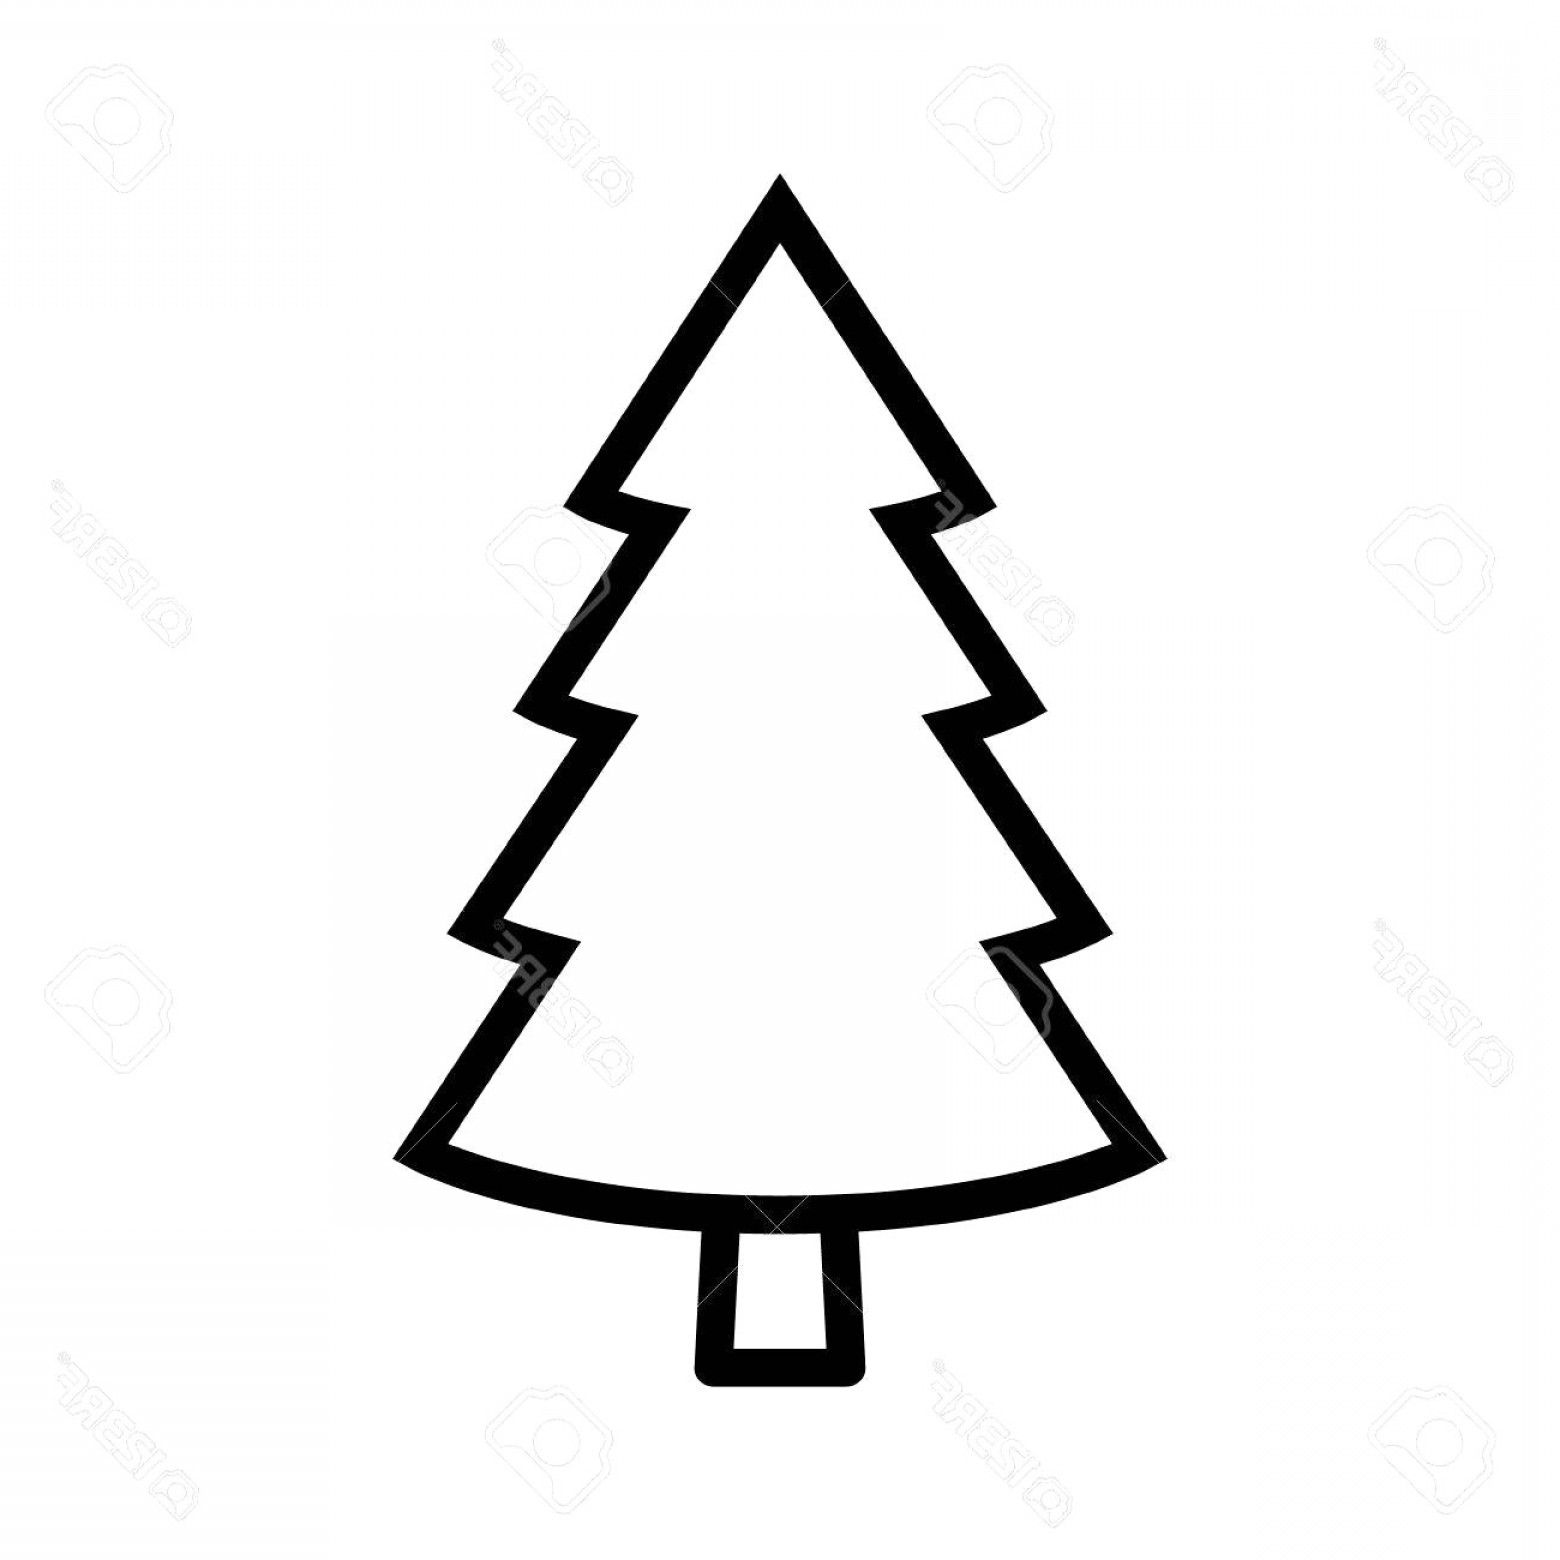 Evergreen Conifer Pine Tree Flat Stylized Line Art Vector Icon For.